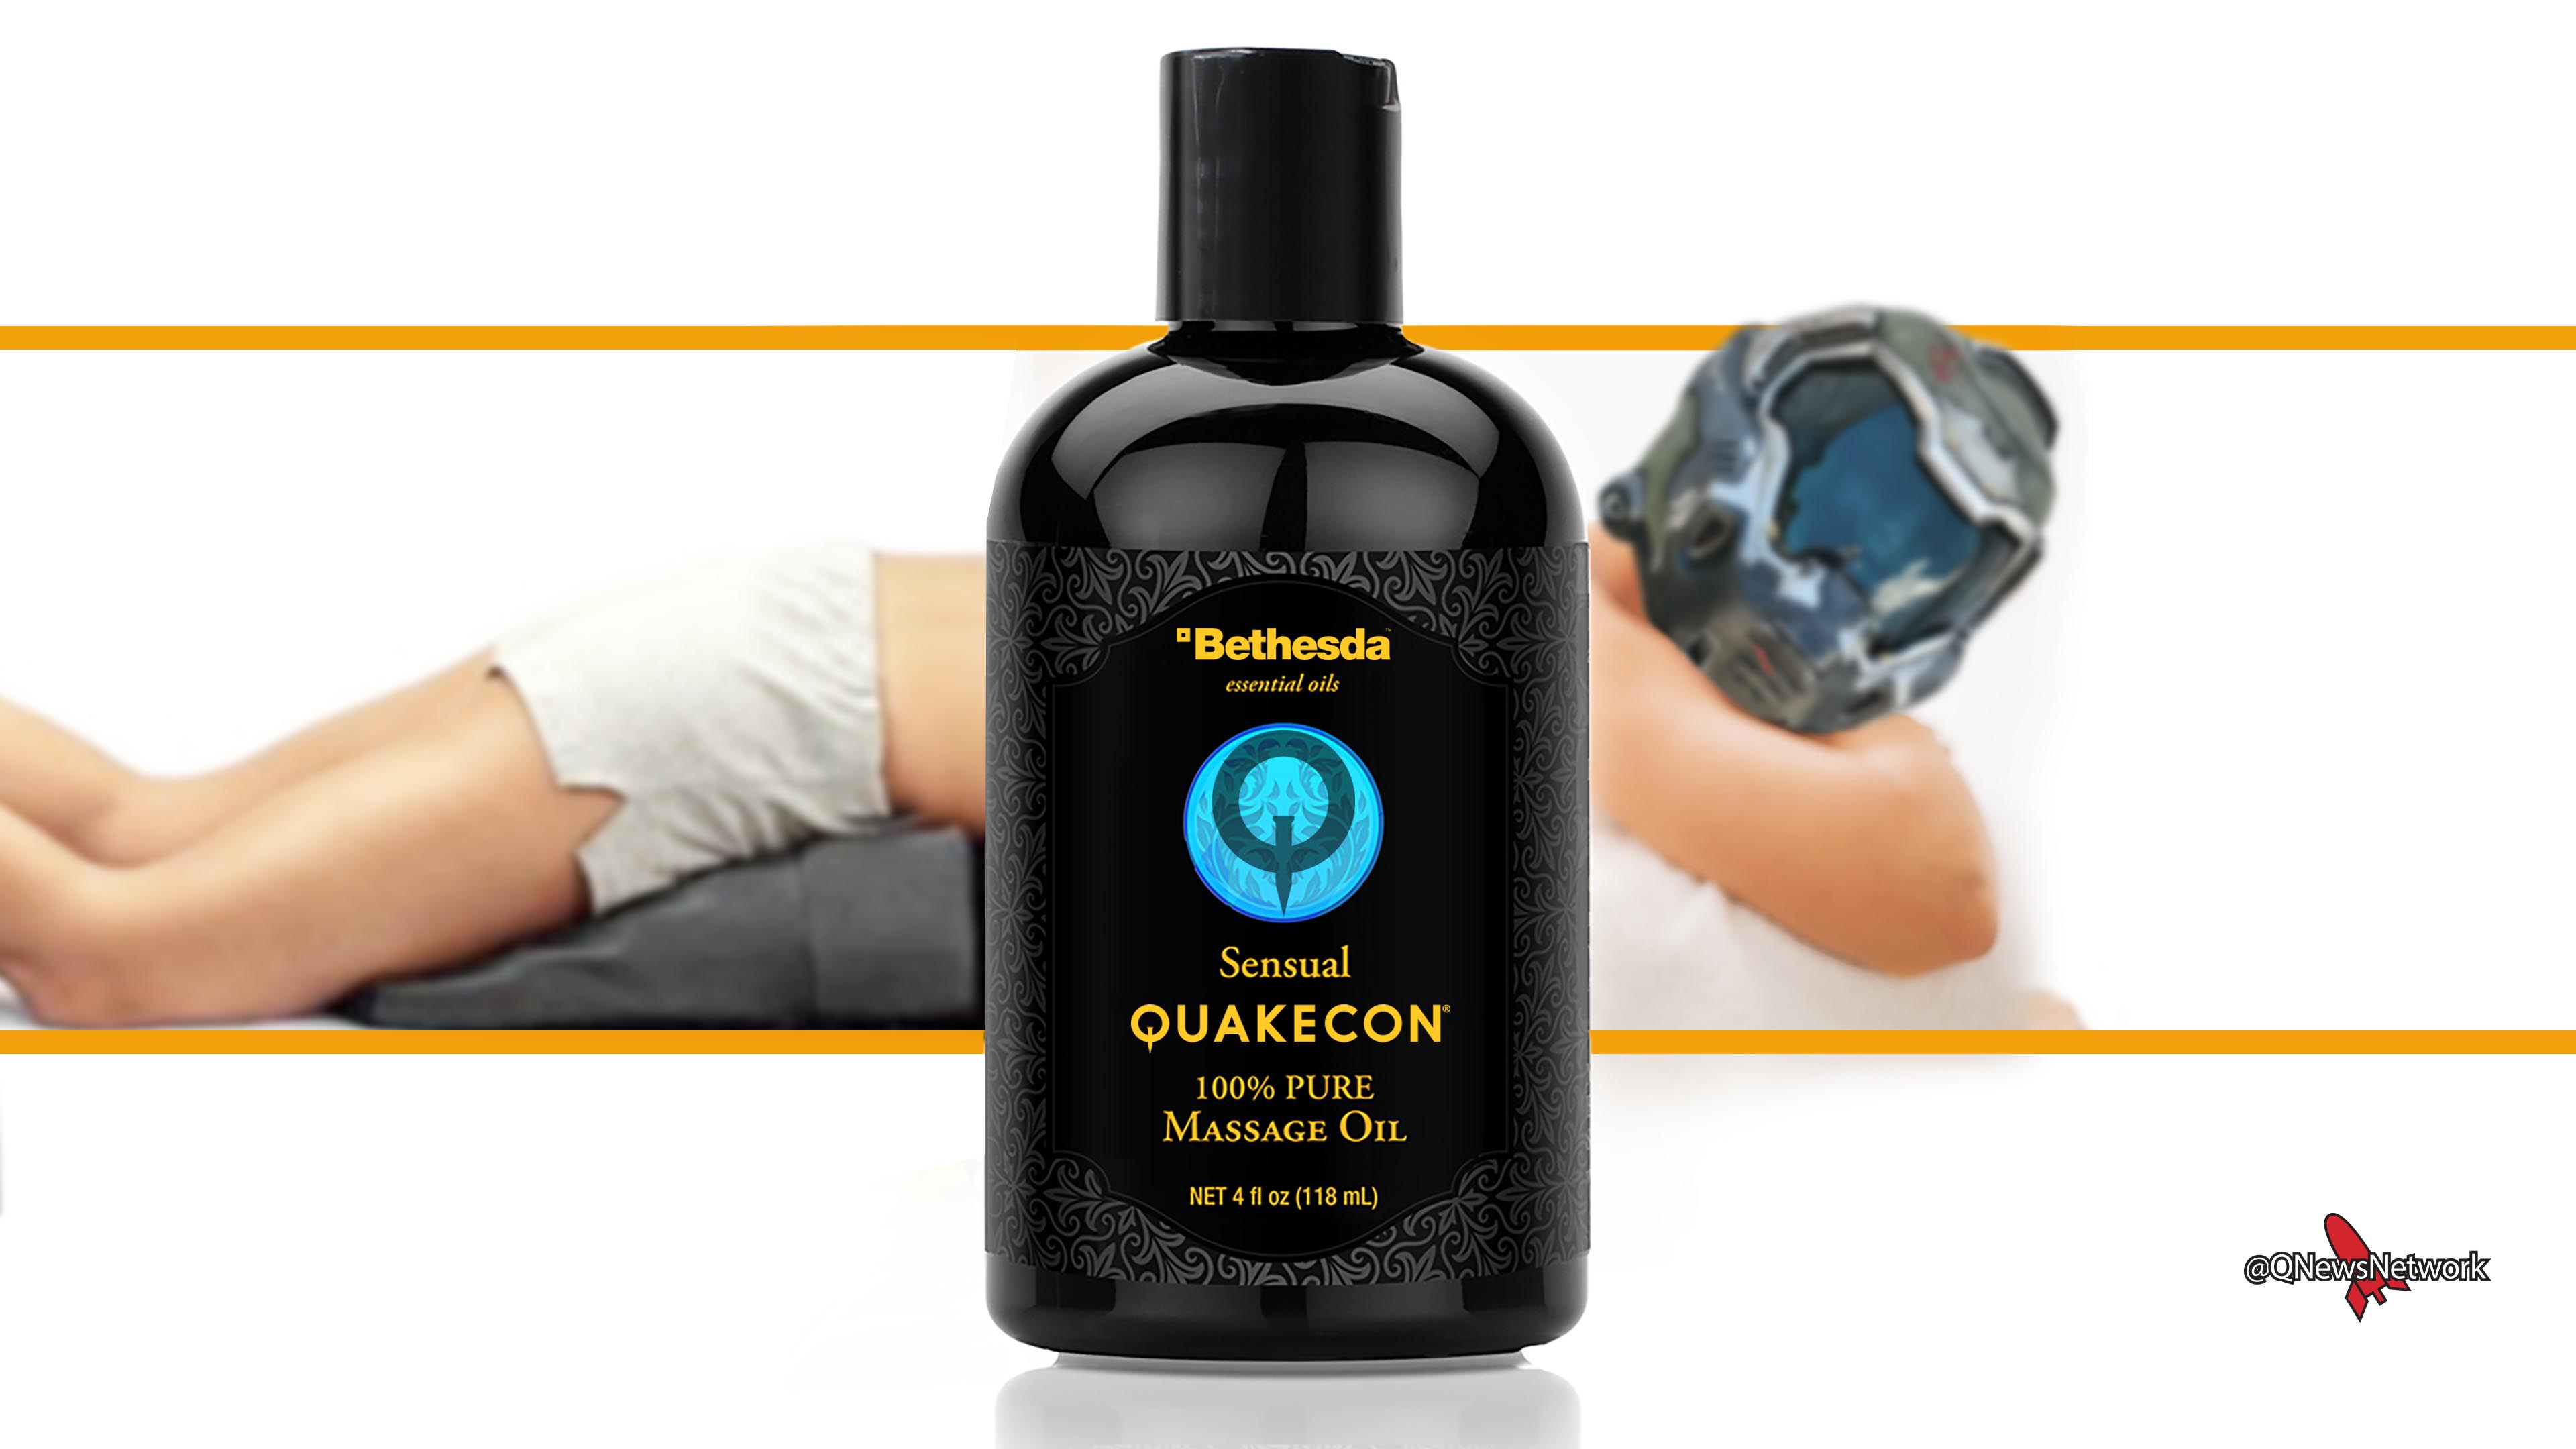 Quakecon Massage Oil